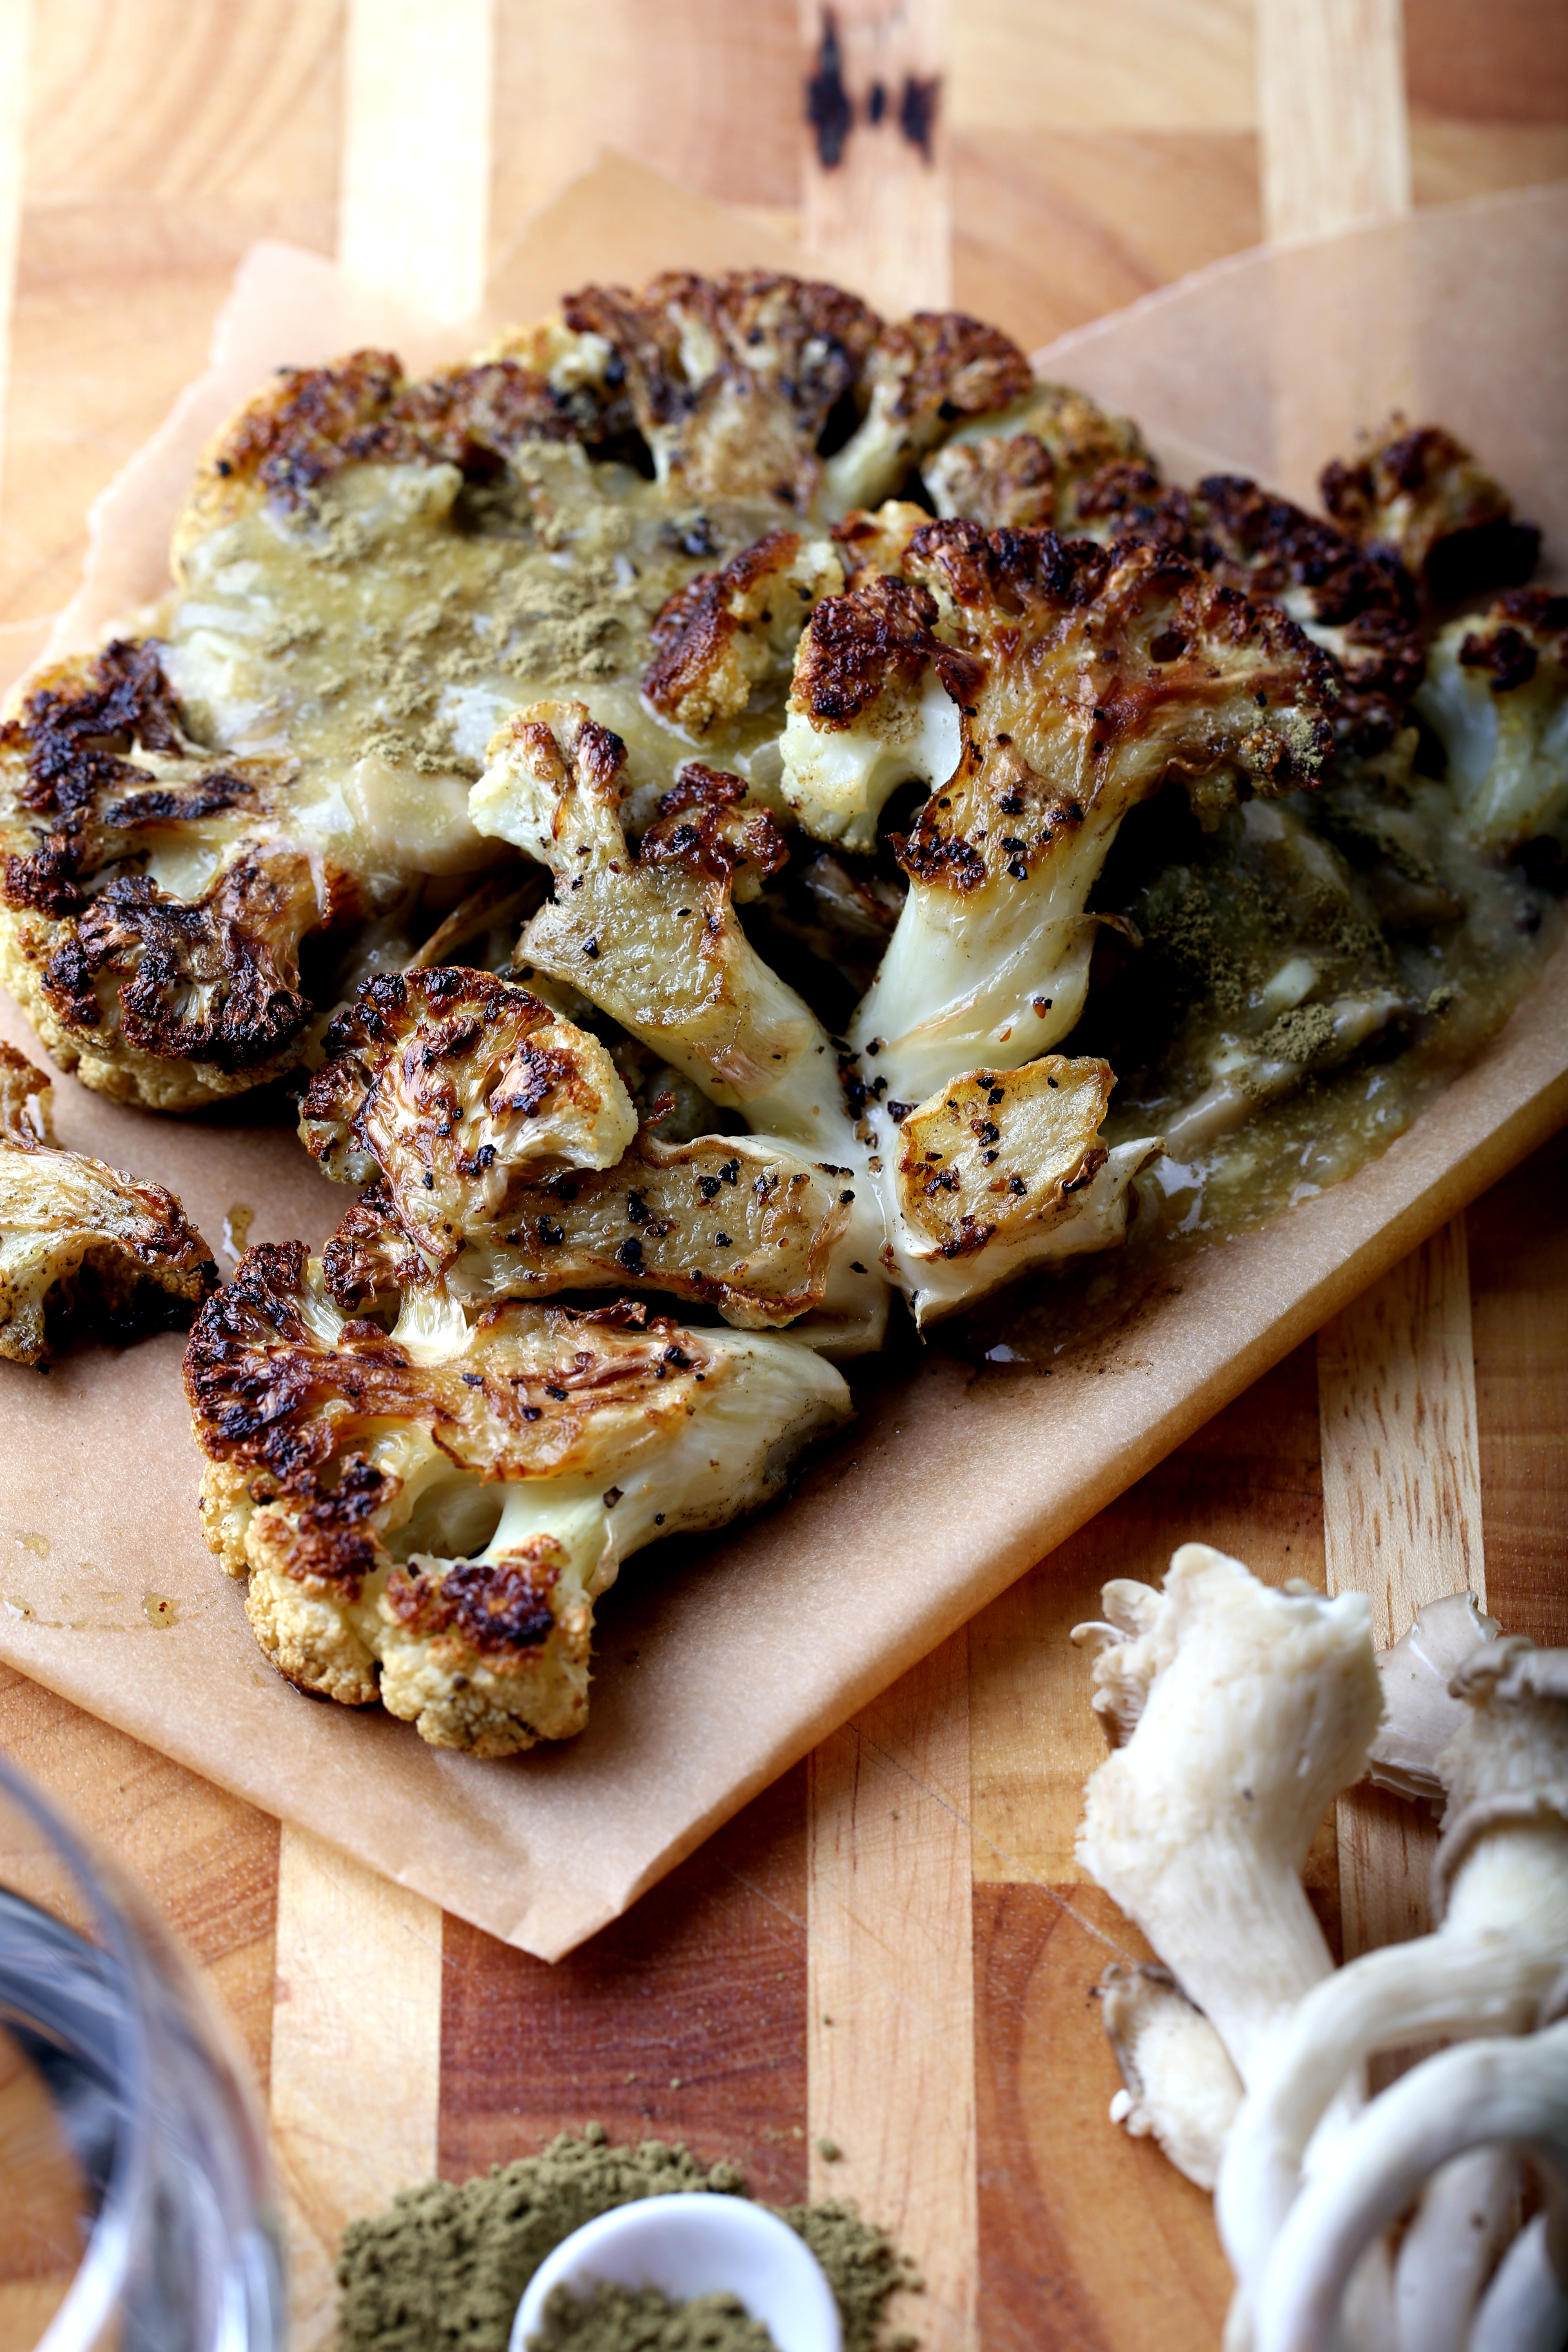 Roasted Cauliflower Steaks with Oyster Mushroom Gravy